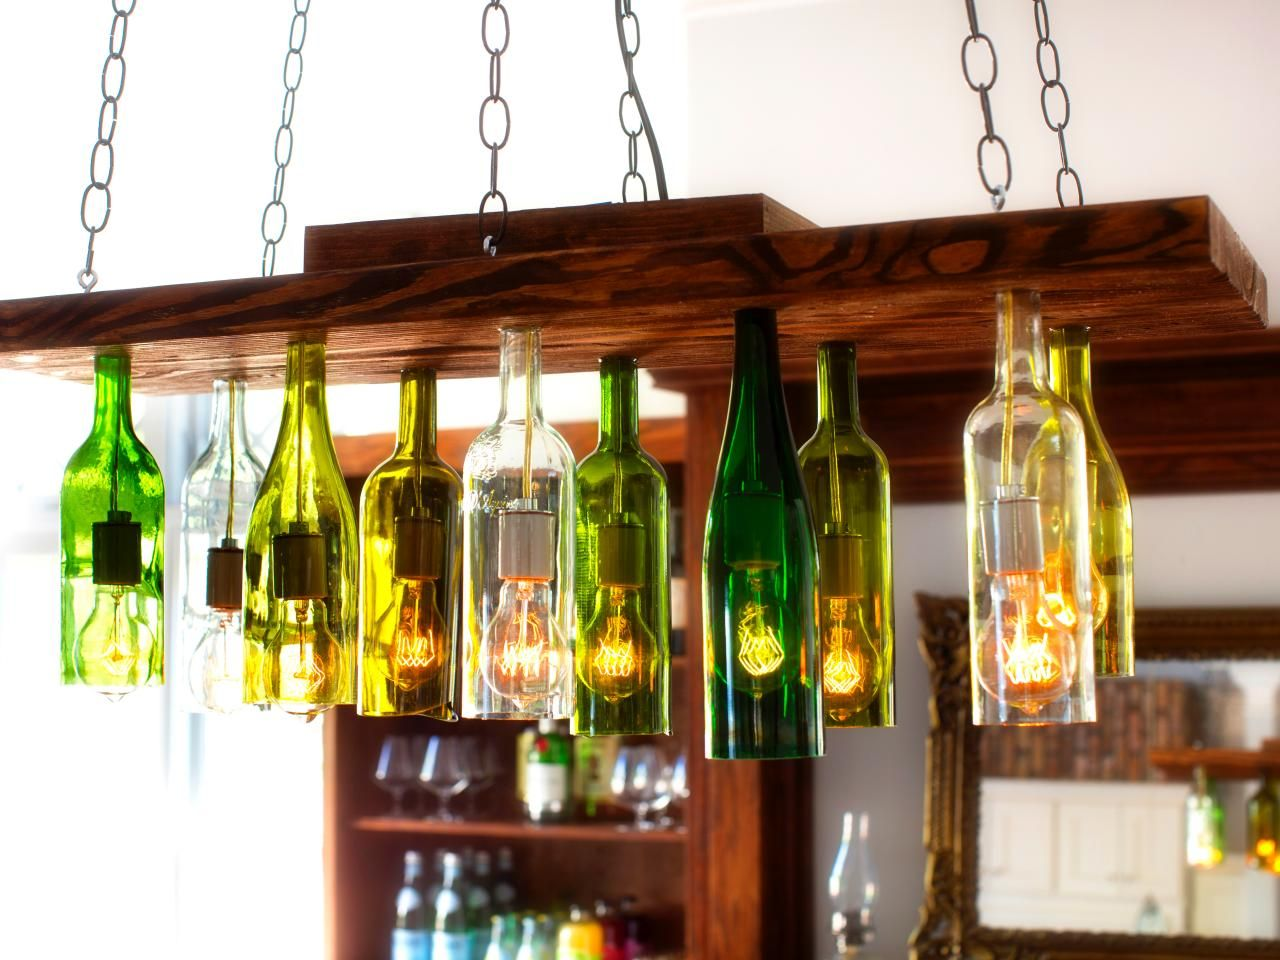 Diy chandeliers that will light up your day chandelier made from upcycled glass bottles arubaitofo Images